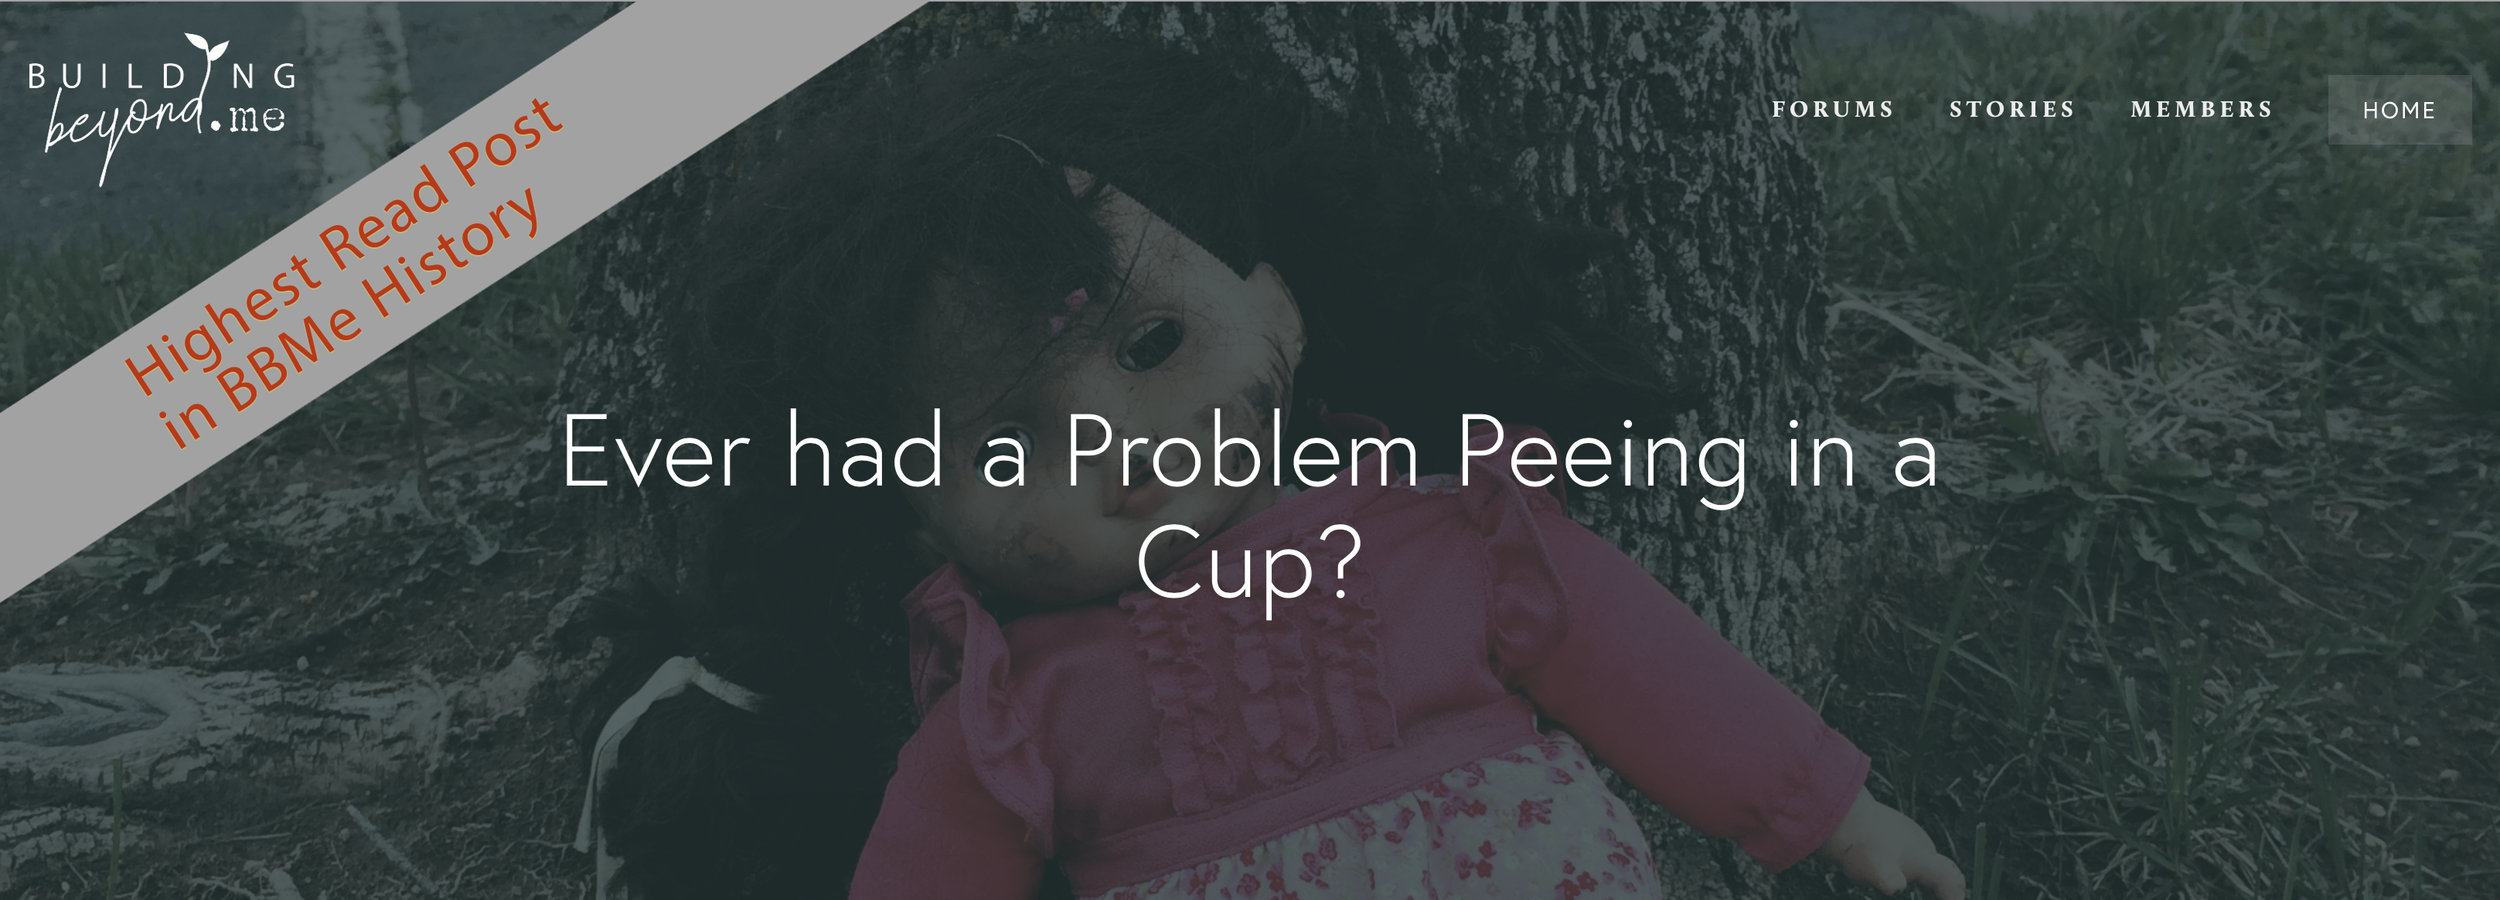 peeing-in-cup-highest-rated-bbme-post.jpg